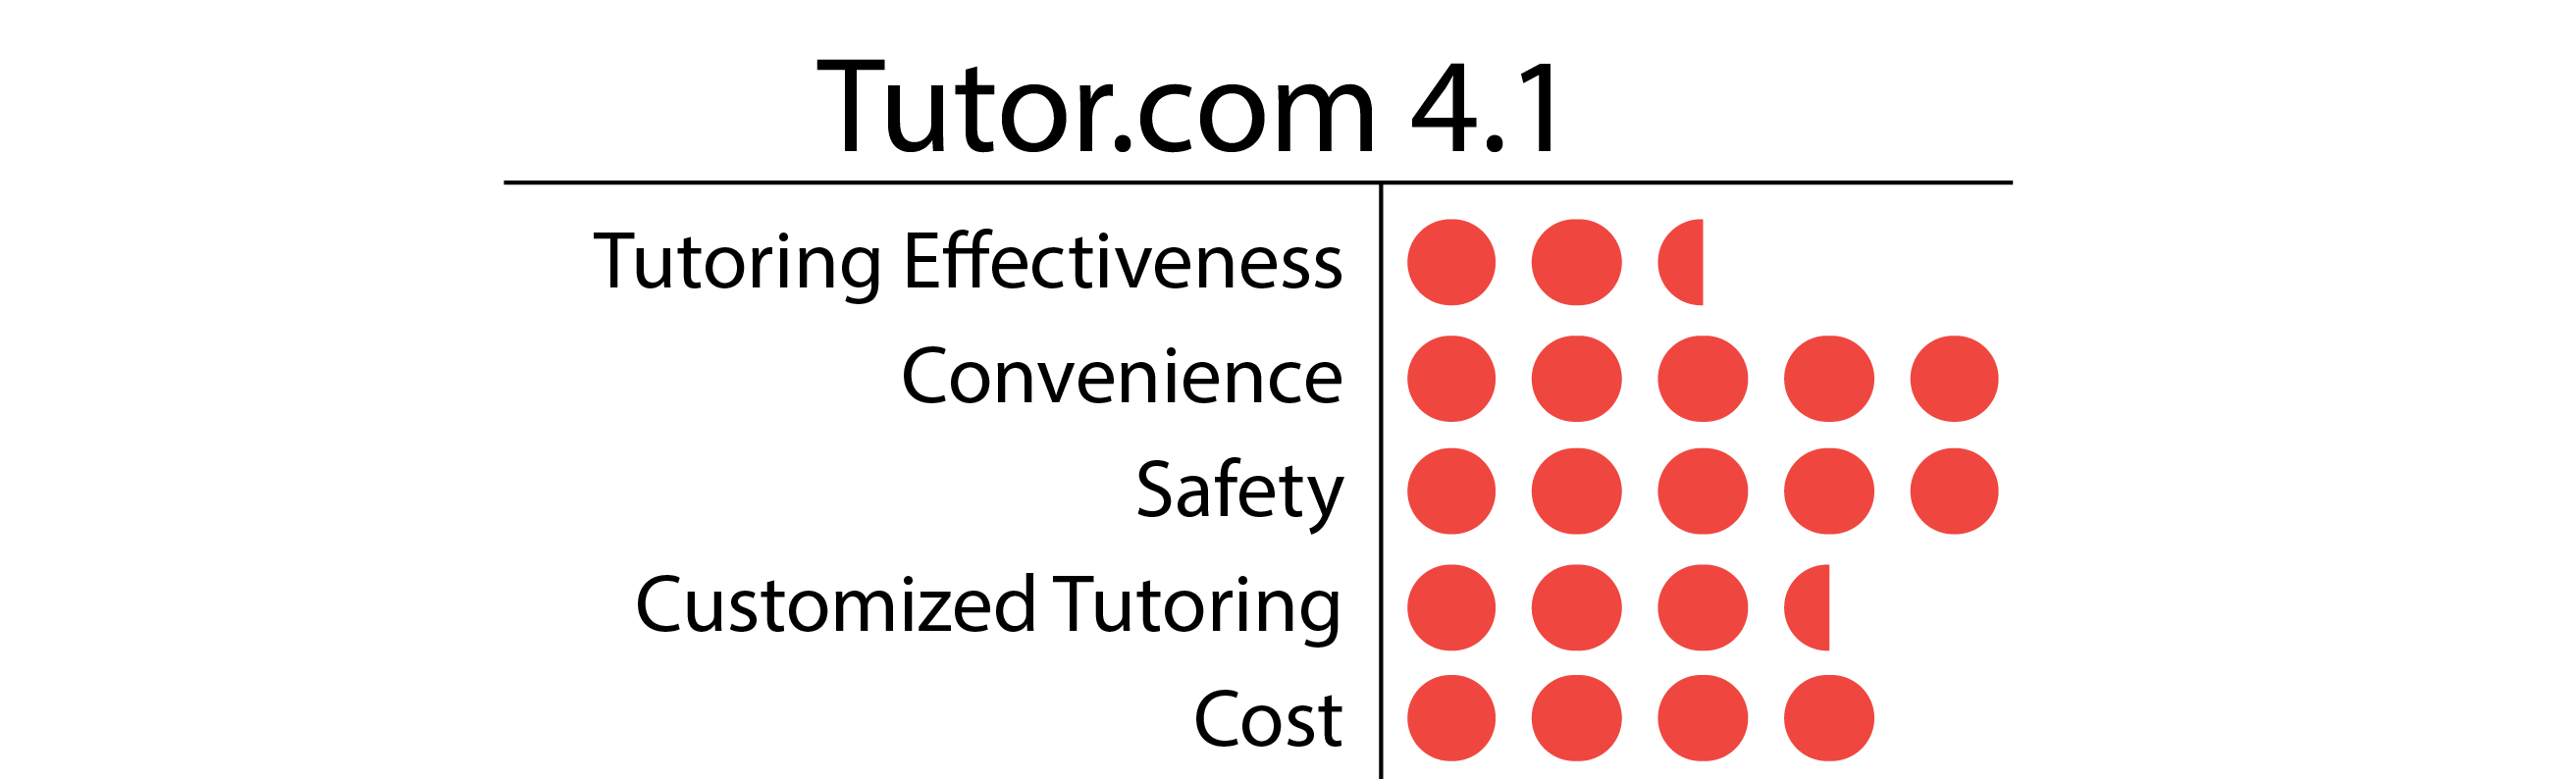 How Much Does Tutoring Cost? - Student-Tutor Education Blog